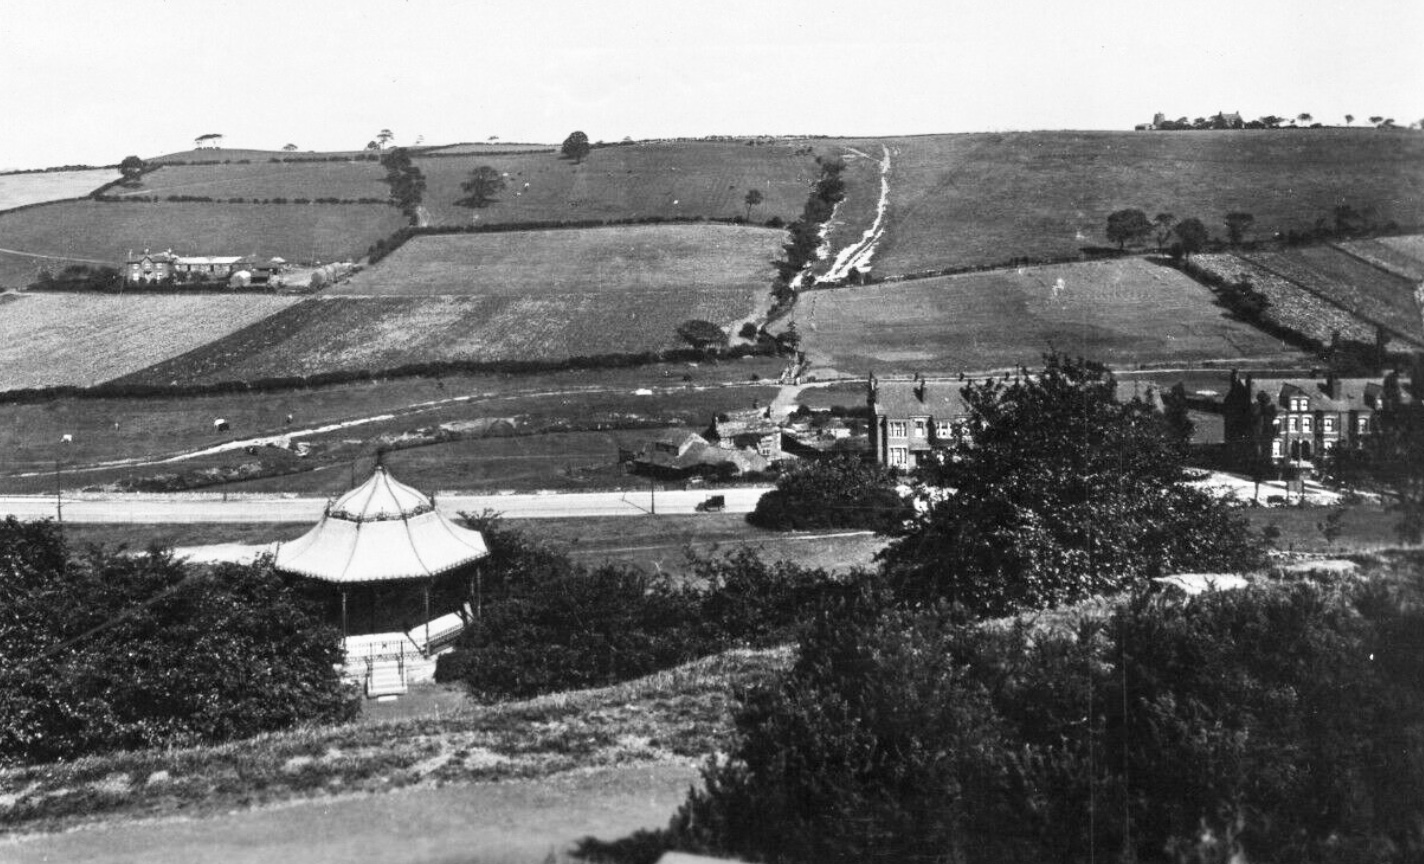 Woodhouse Ridge, with Bandstand, undated